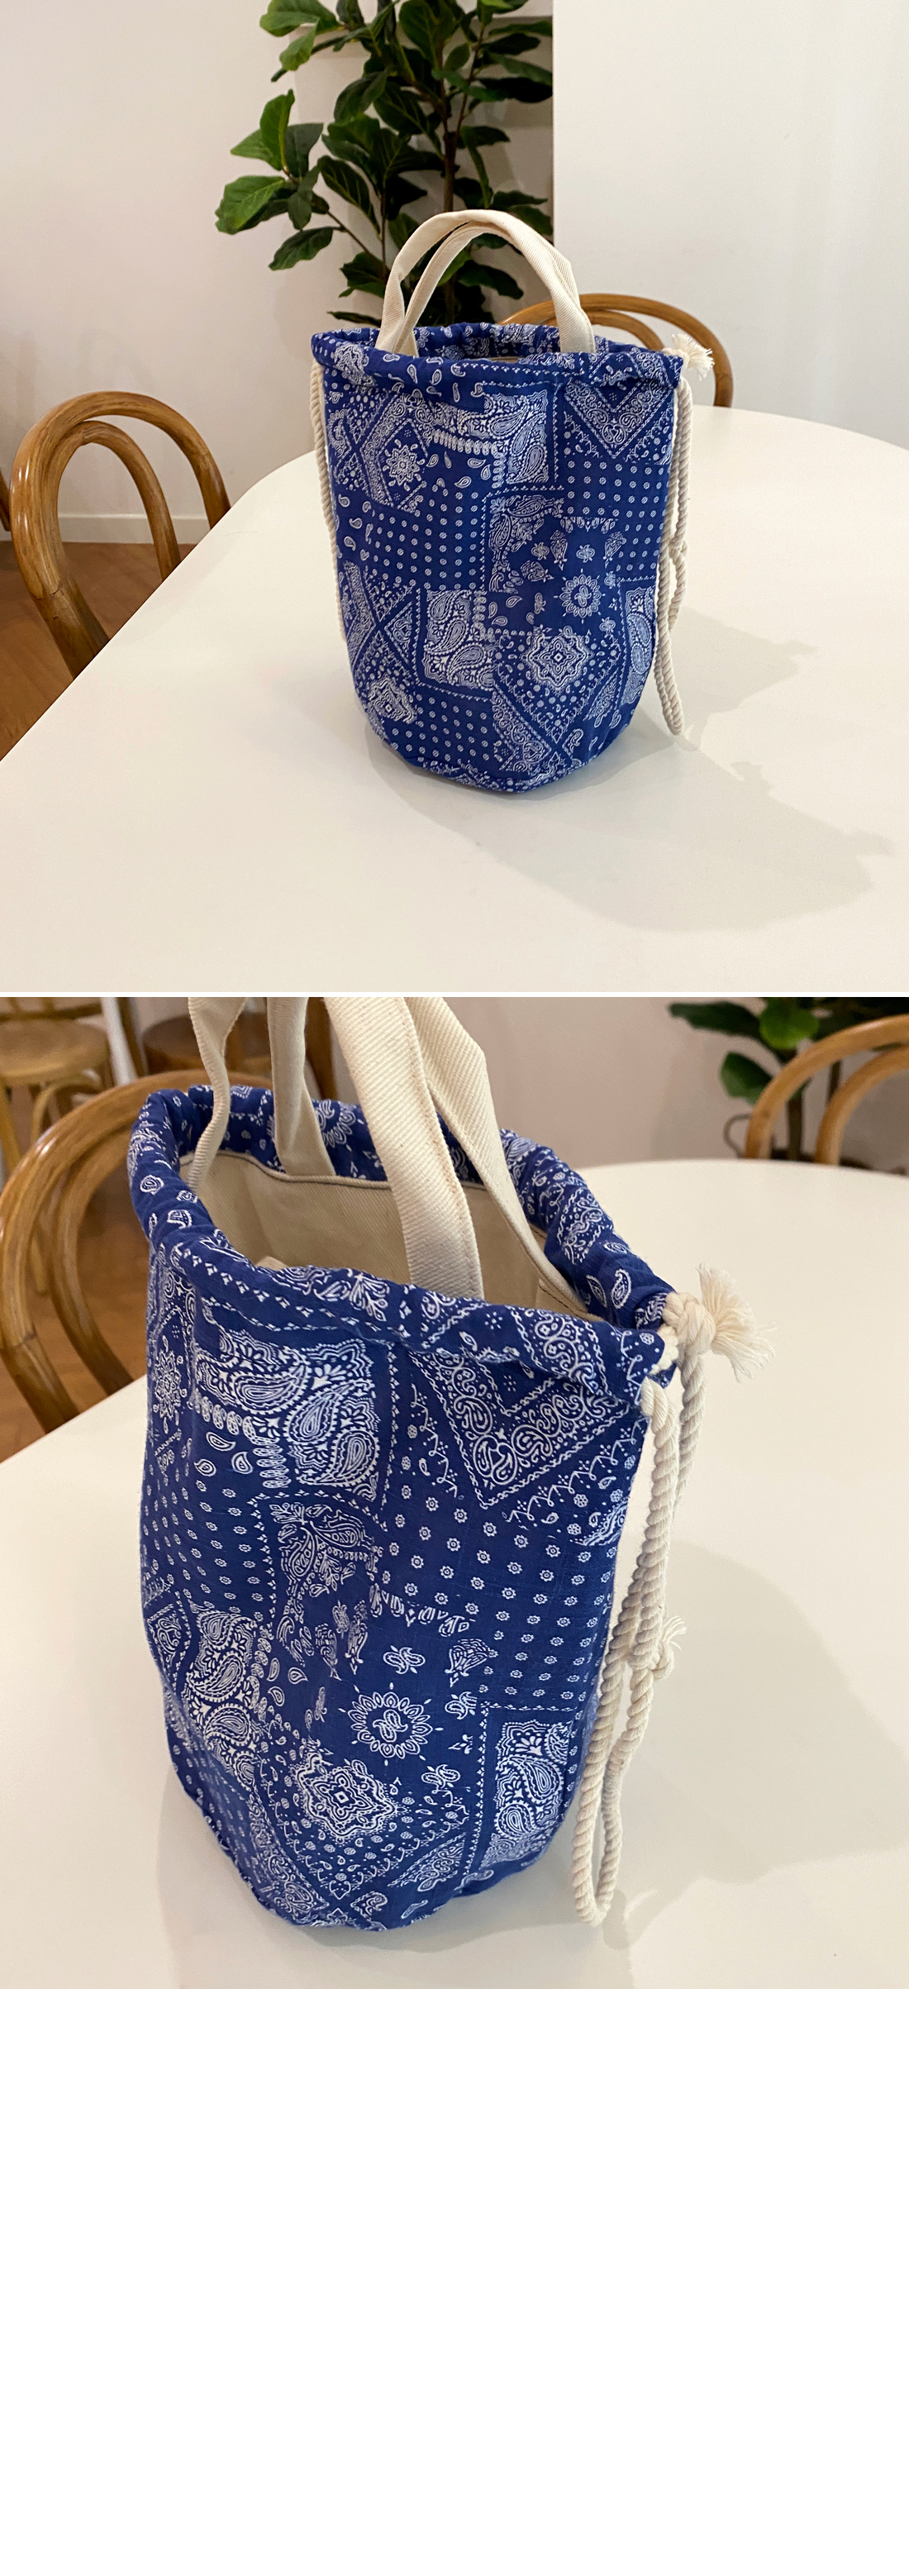 Paisley double sided bags